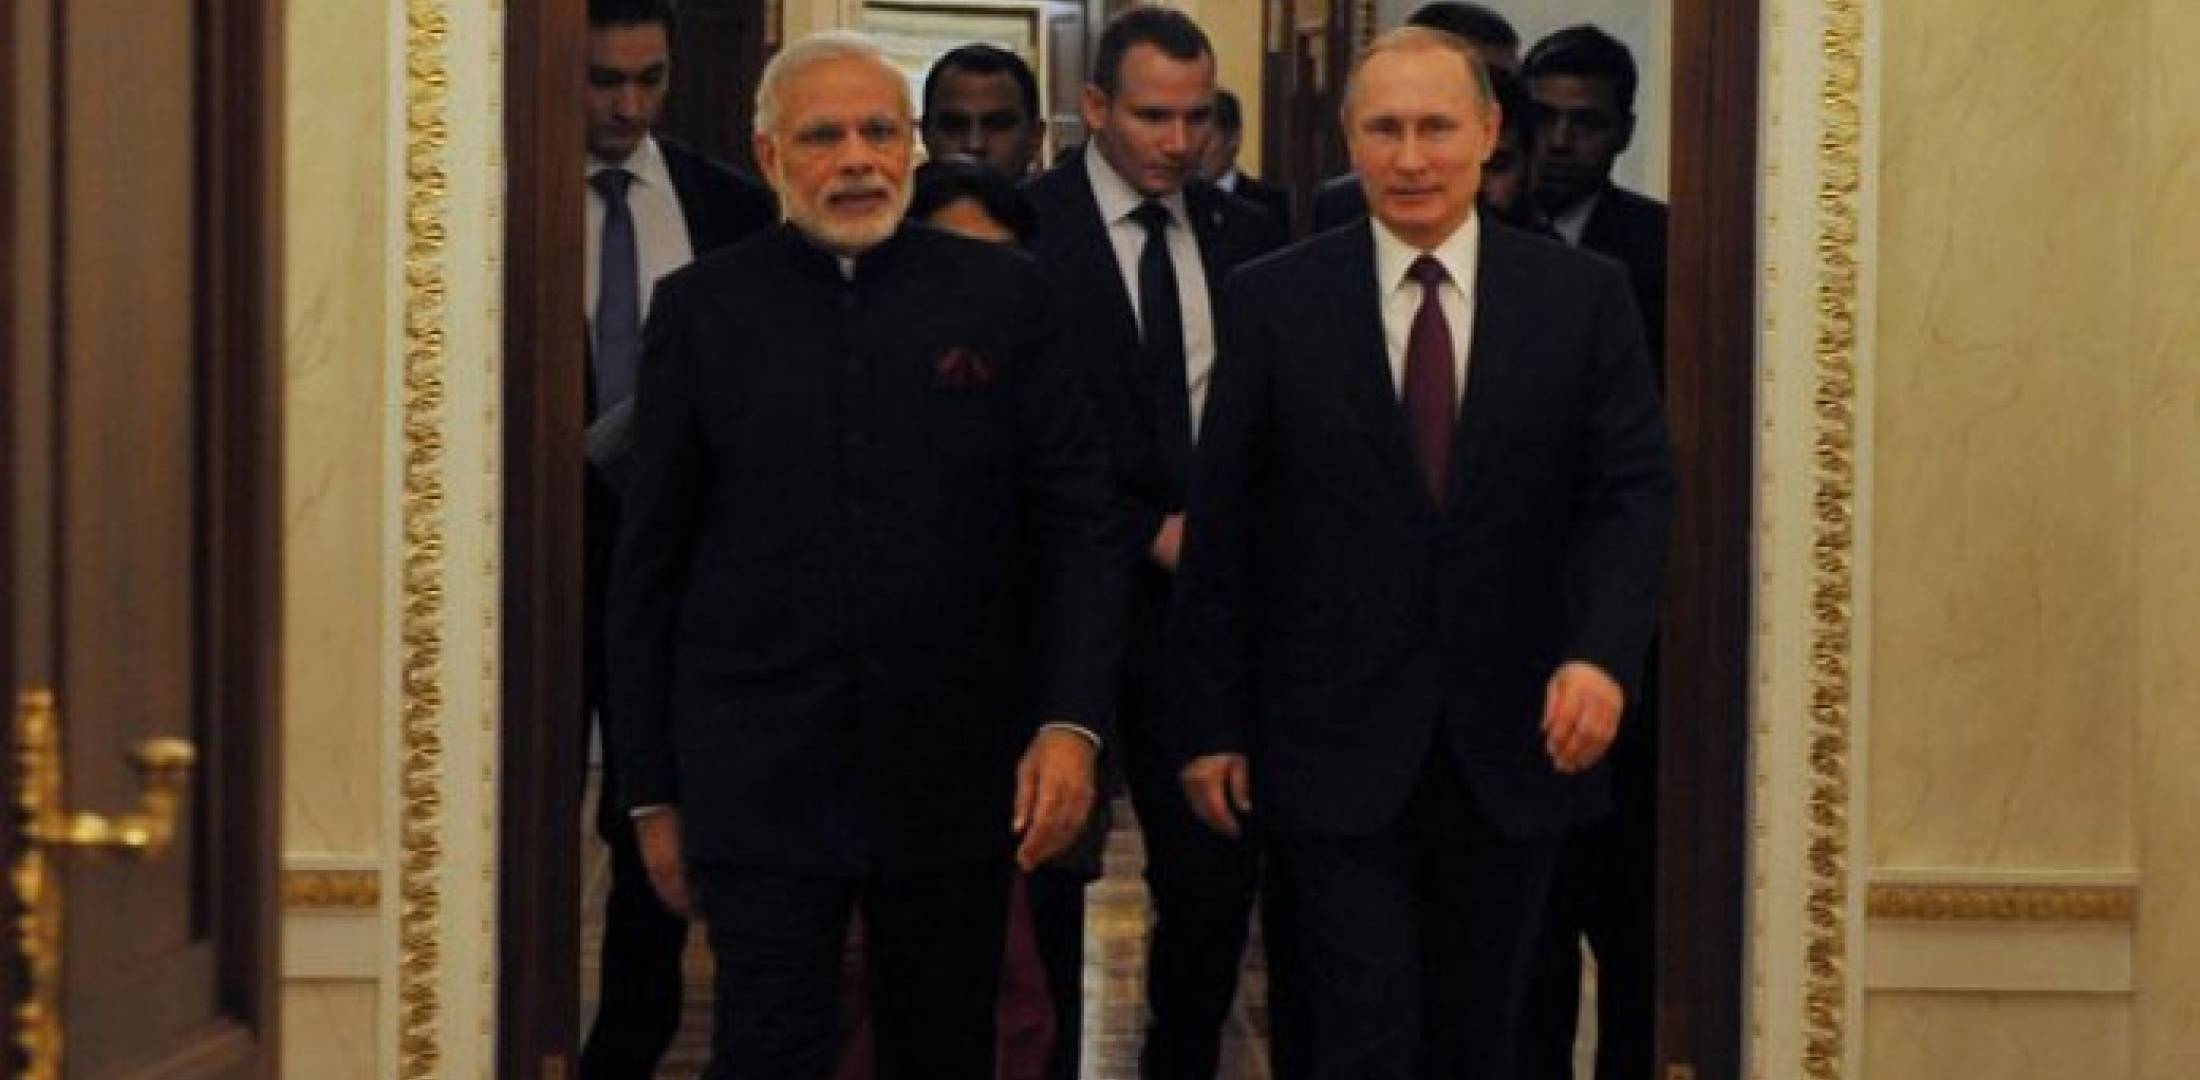 Indian Prime Minister Modi and Russian President Putin